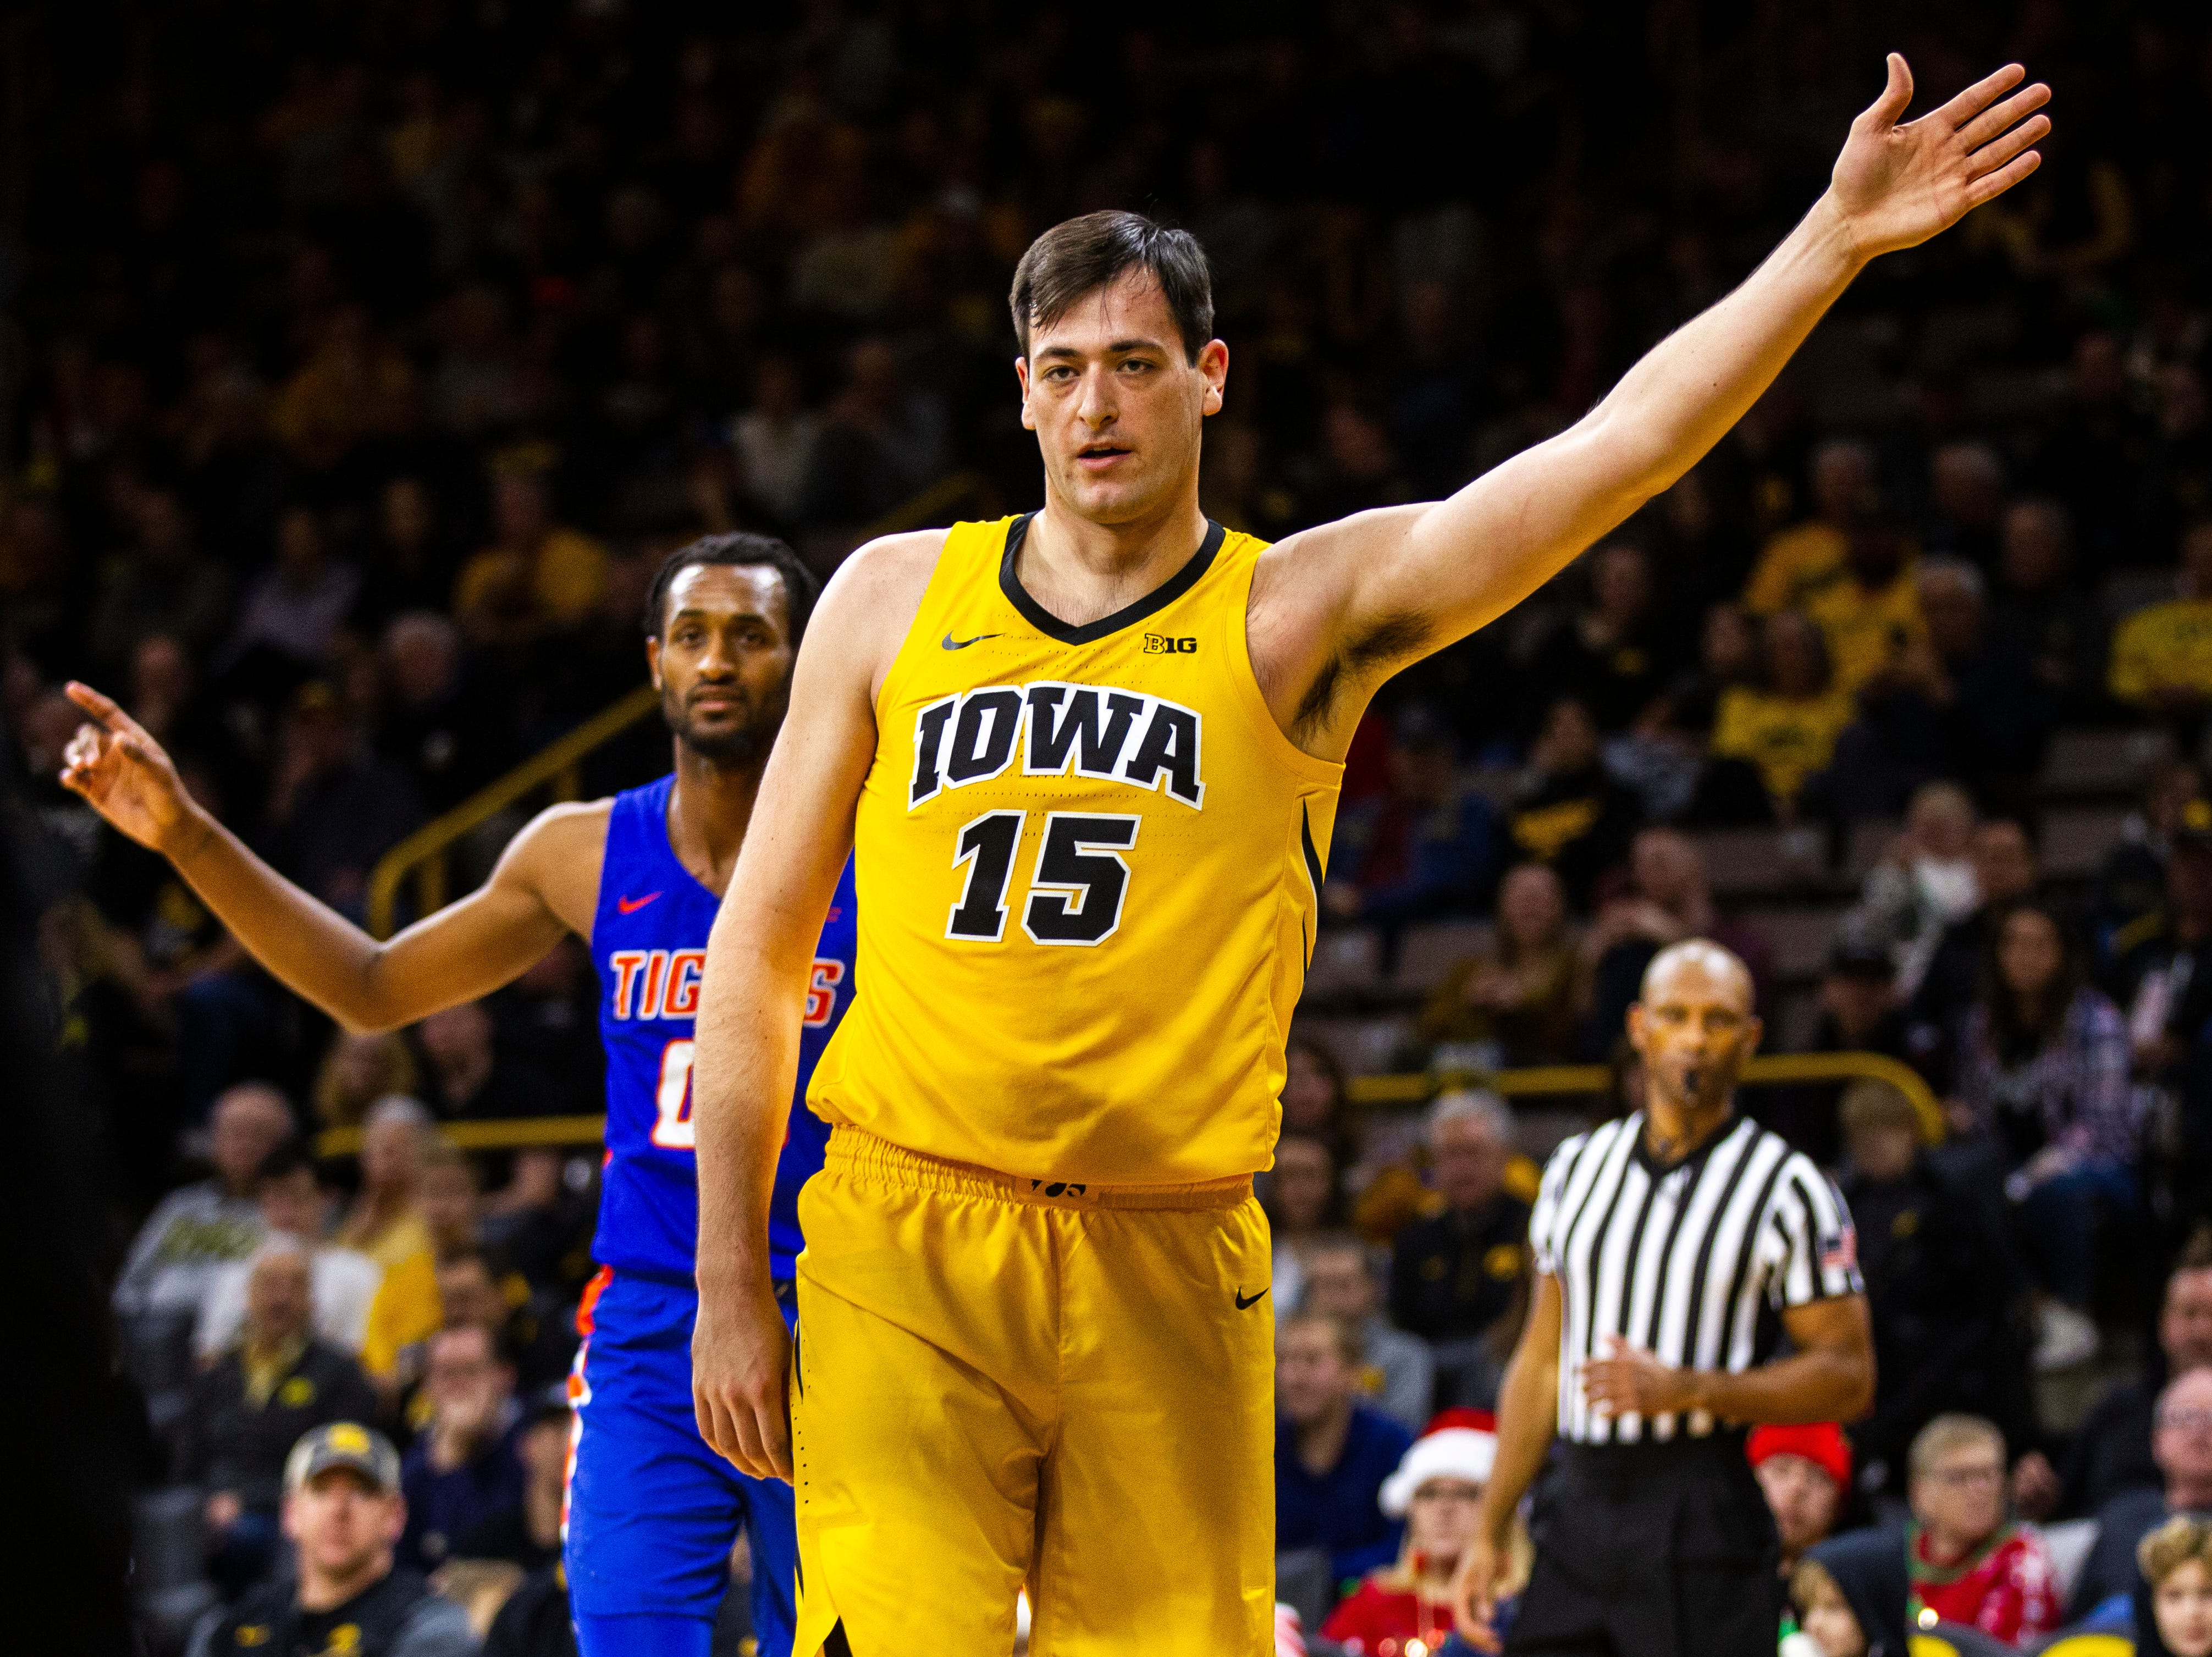 Iowa forward Ryan Kriener (15) gestures for possesion during a NCAA men's basketball game on Saturday, Dec. 22, 2018, at Carver-Hawkeye Arena in Iowa City.